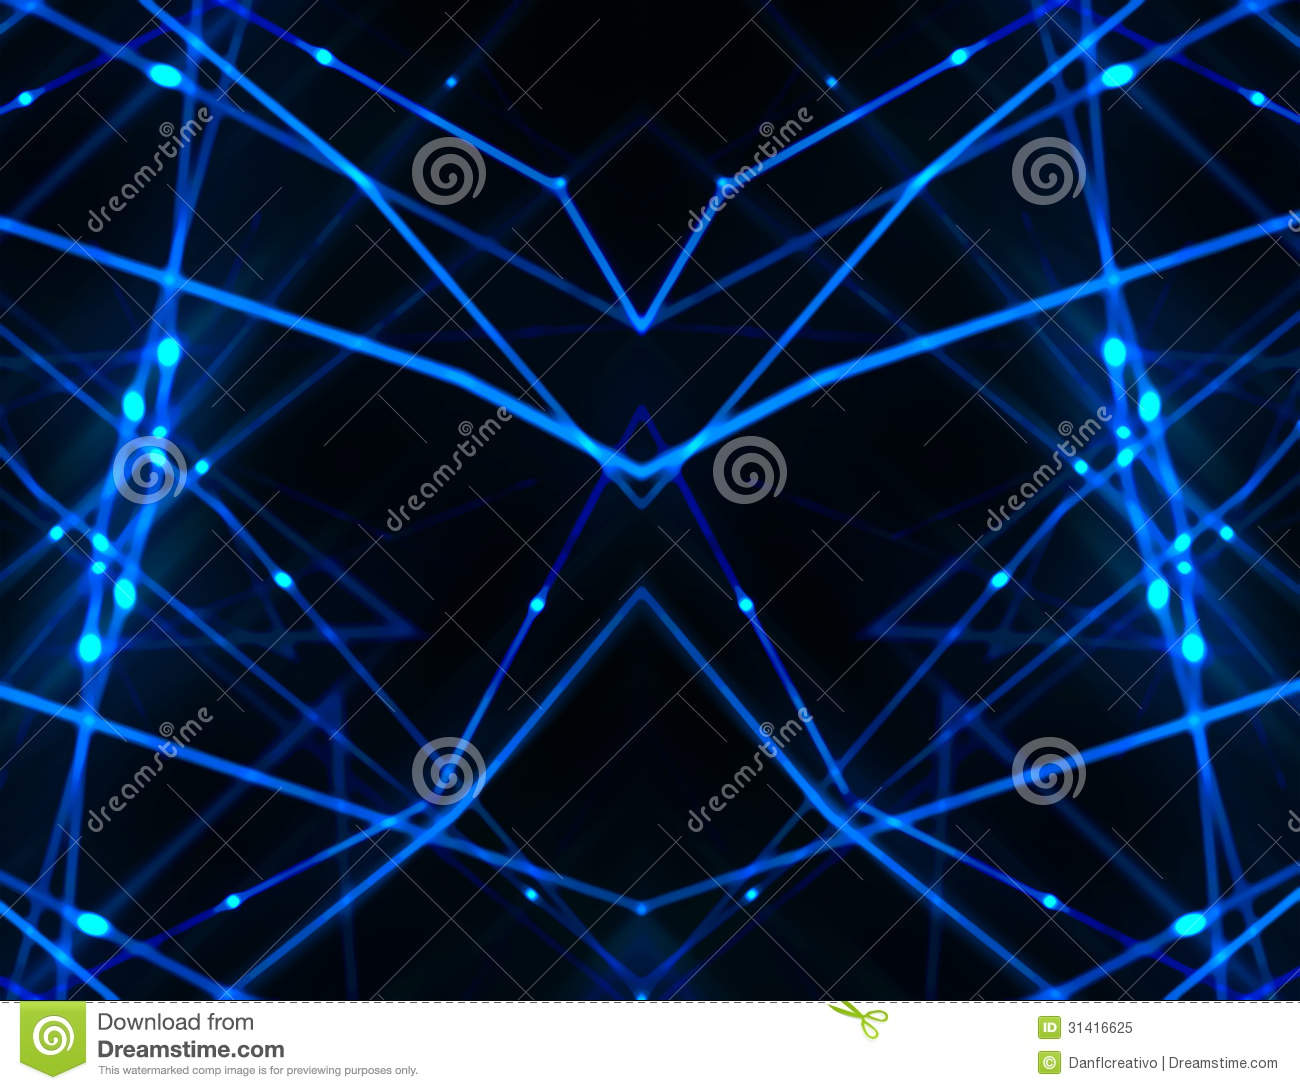 High Tech Futuristic Networks Backgrounds Stock Image